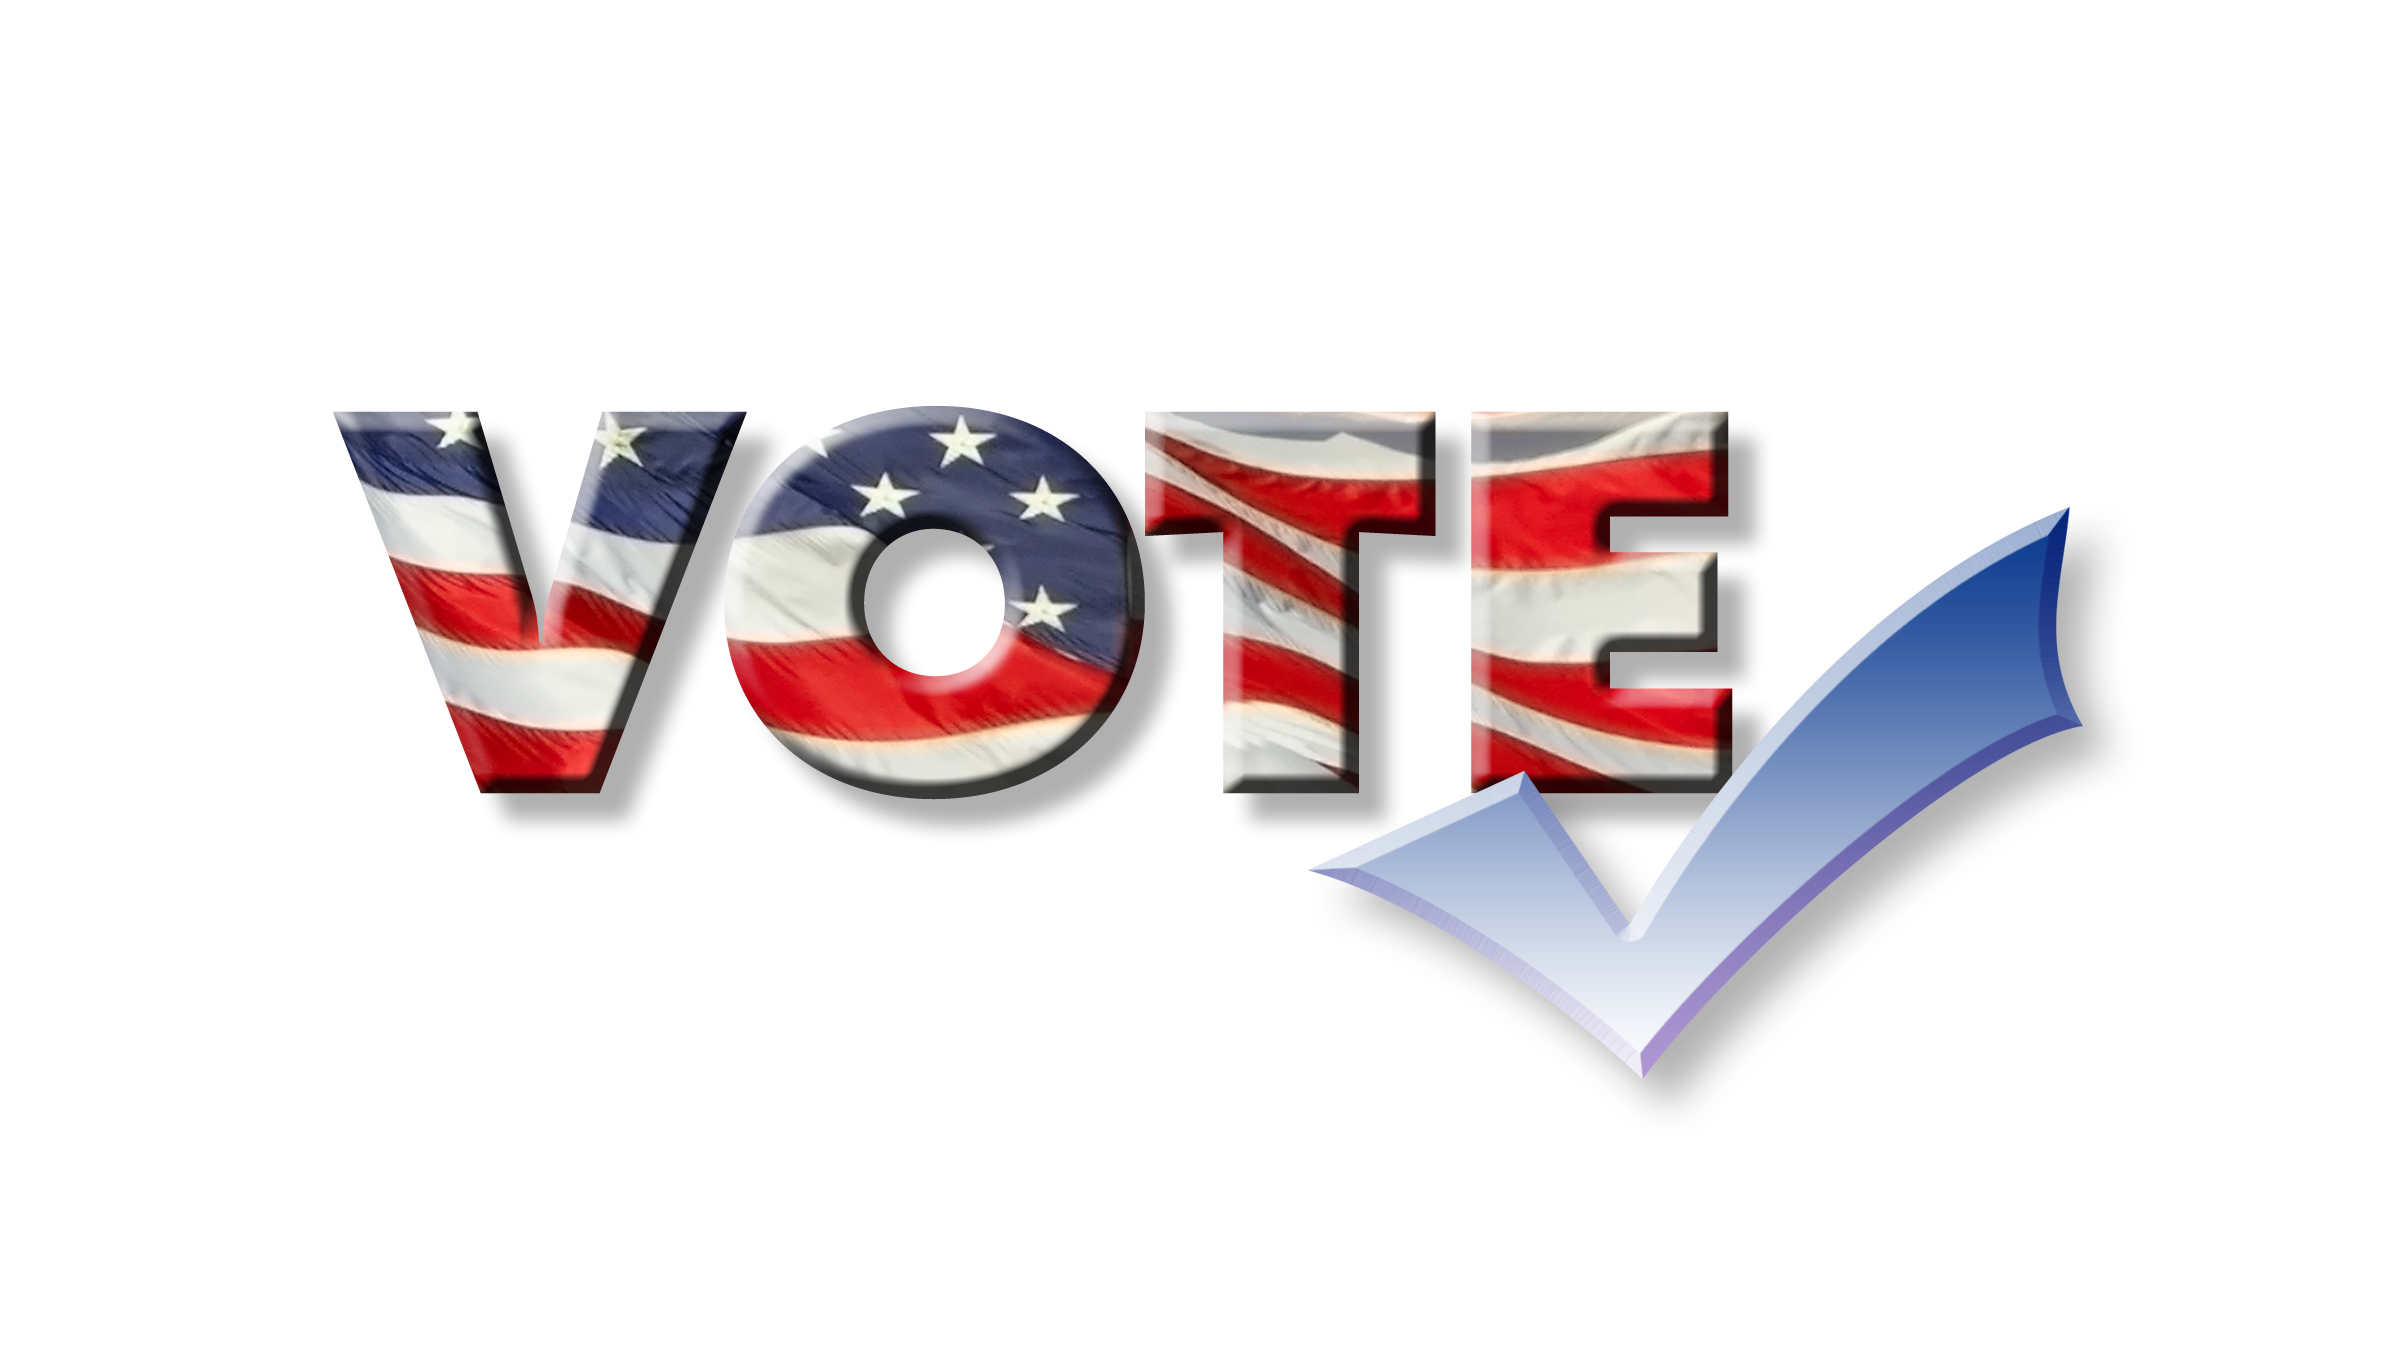 bigstock-Vote-With-Checkmark-2572278.jpg